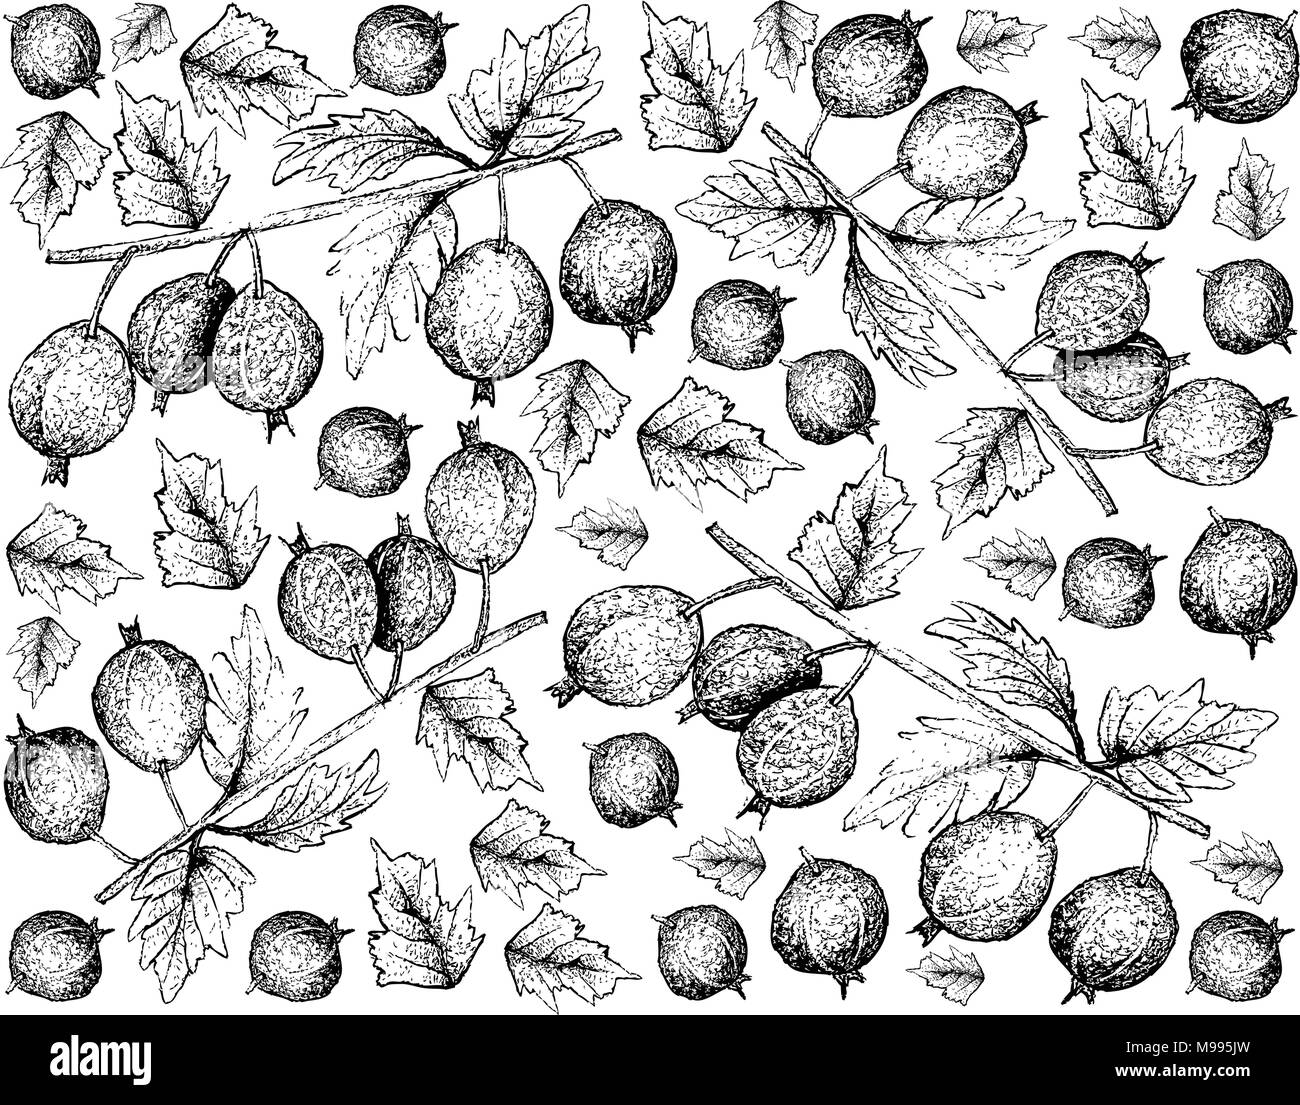 Berry Fruits, Illustration Wallpaper Background of Hand Drawn Sketch Fresh Black Velvet Gooseberry or Ribes Oxyacanthoides Fruit Isolated on White Bac - Stock Vector